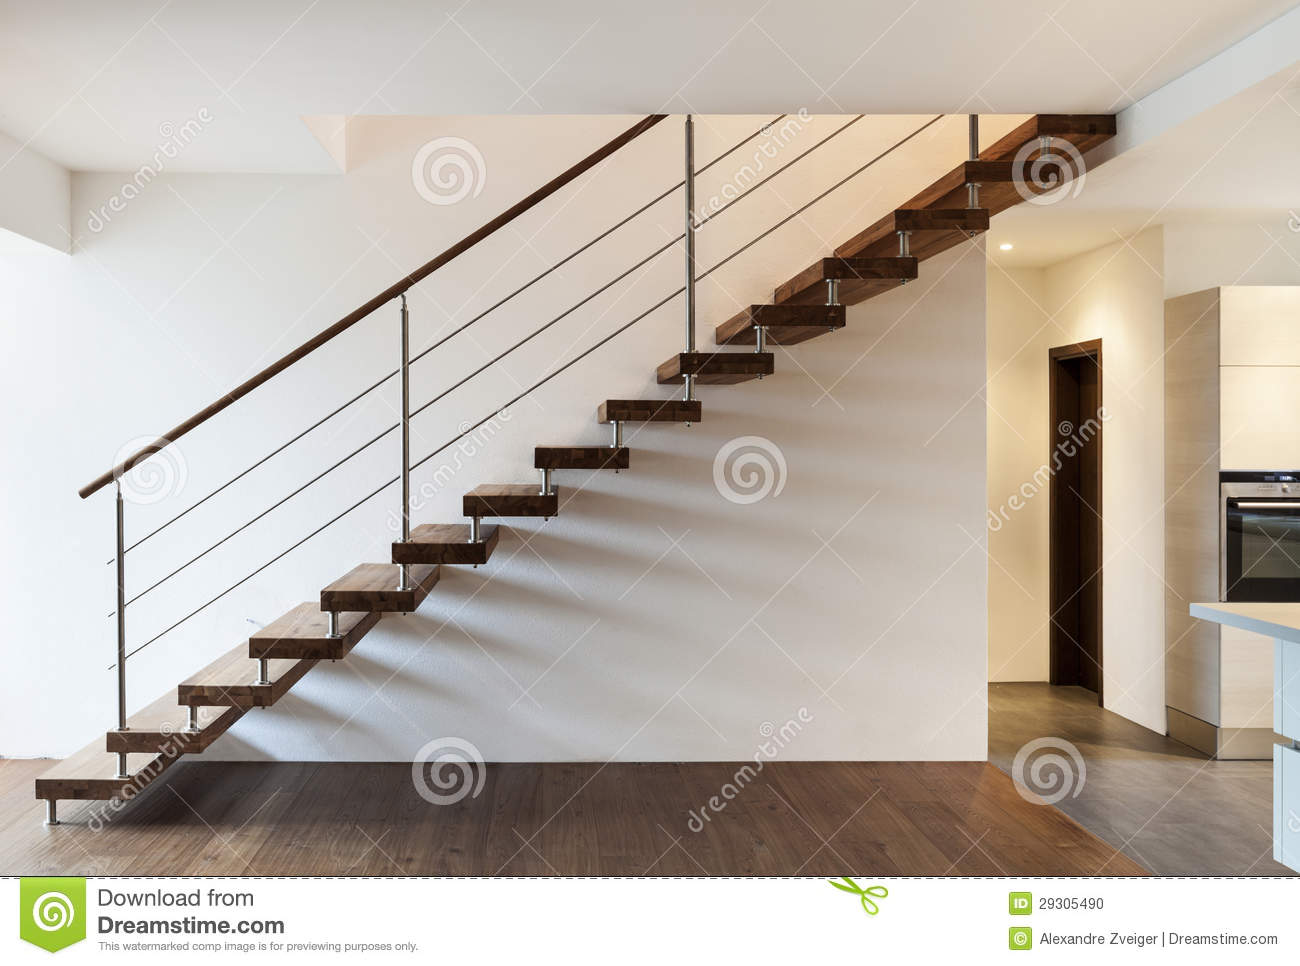 Escalier int rieur photo stock image 29305490 for Escalier interieur